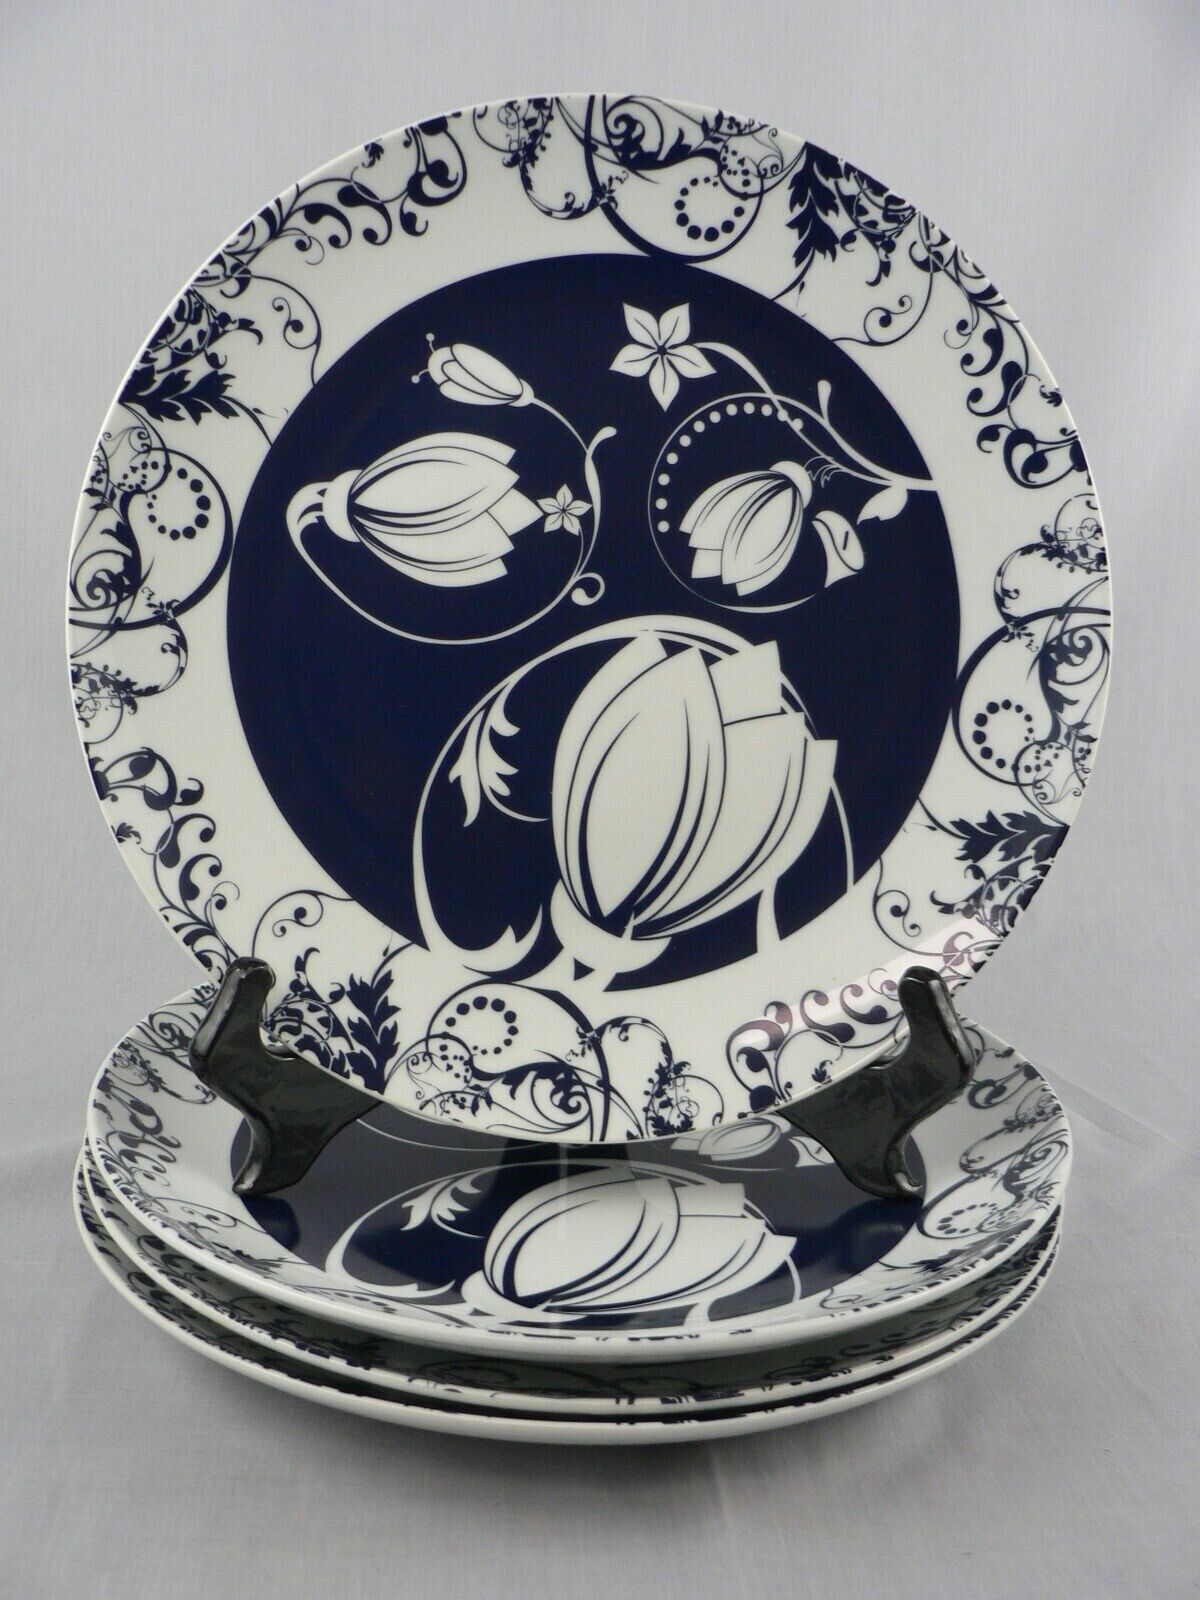 Slimware Dinner Plates Graphically Designed Portion Control Blaubelle Design